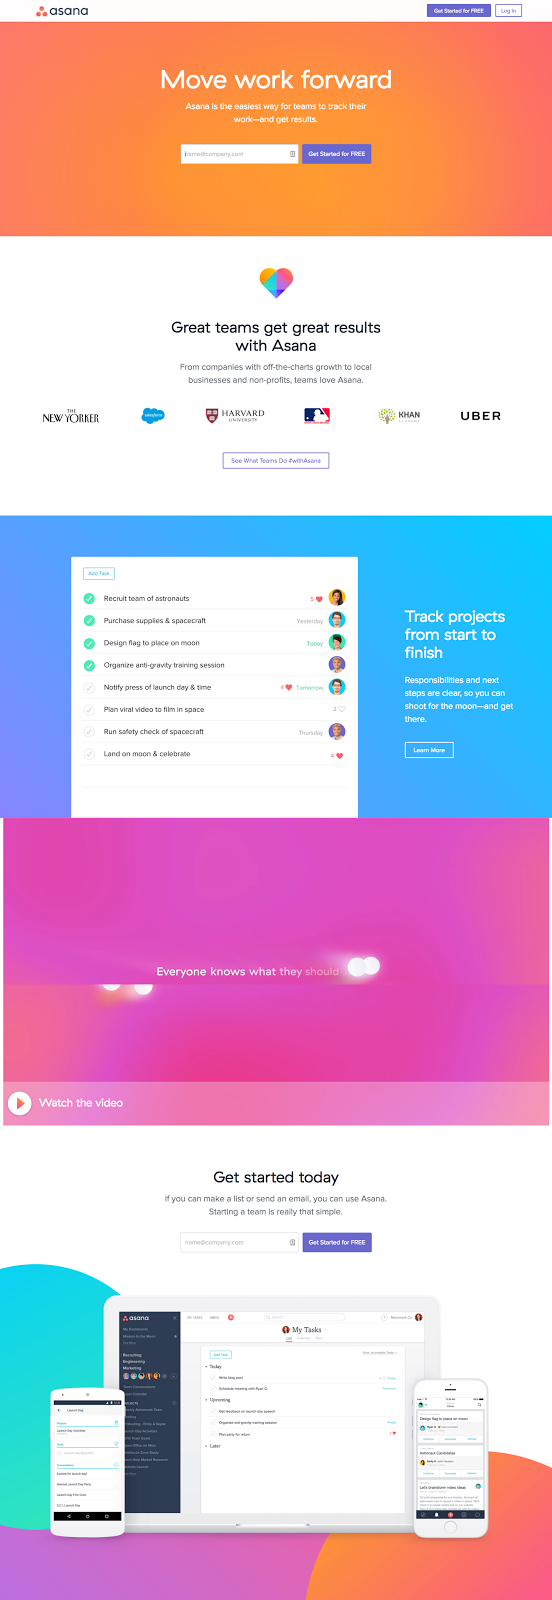 screenshot asana.com 2016 04 08 15 00 33